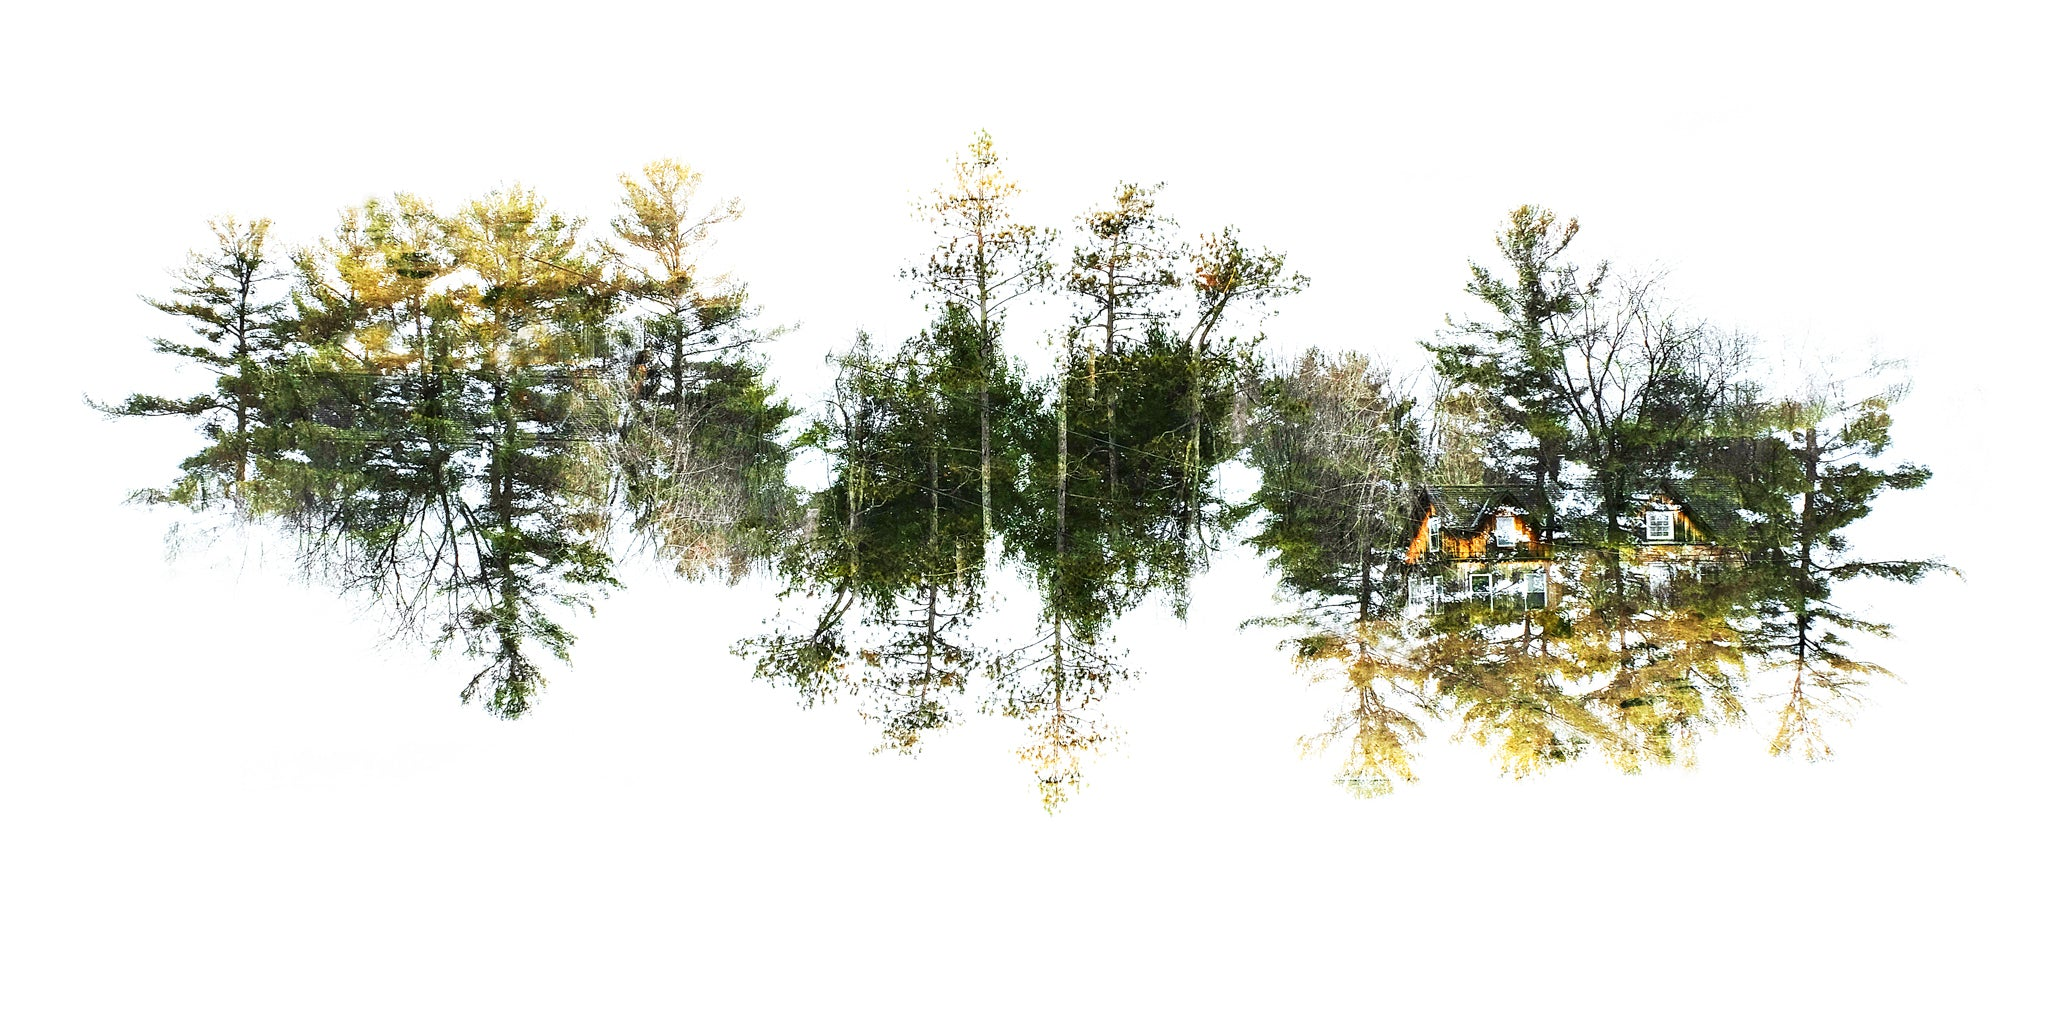 'Hiding Place' - Inverted Double Exposure